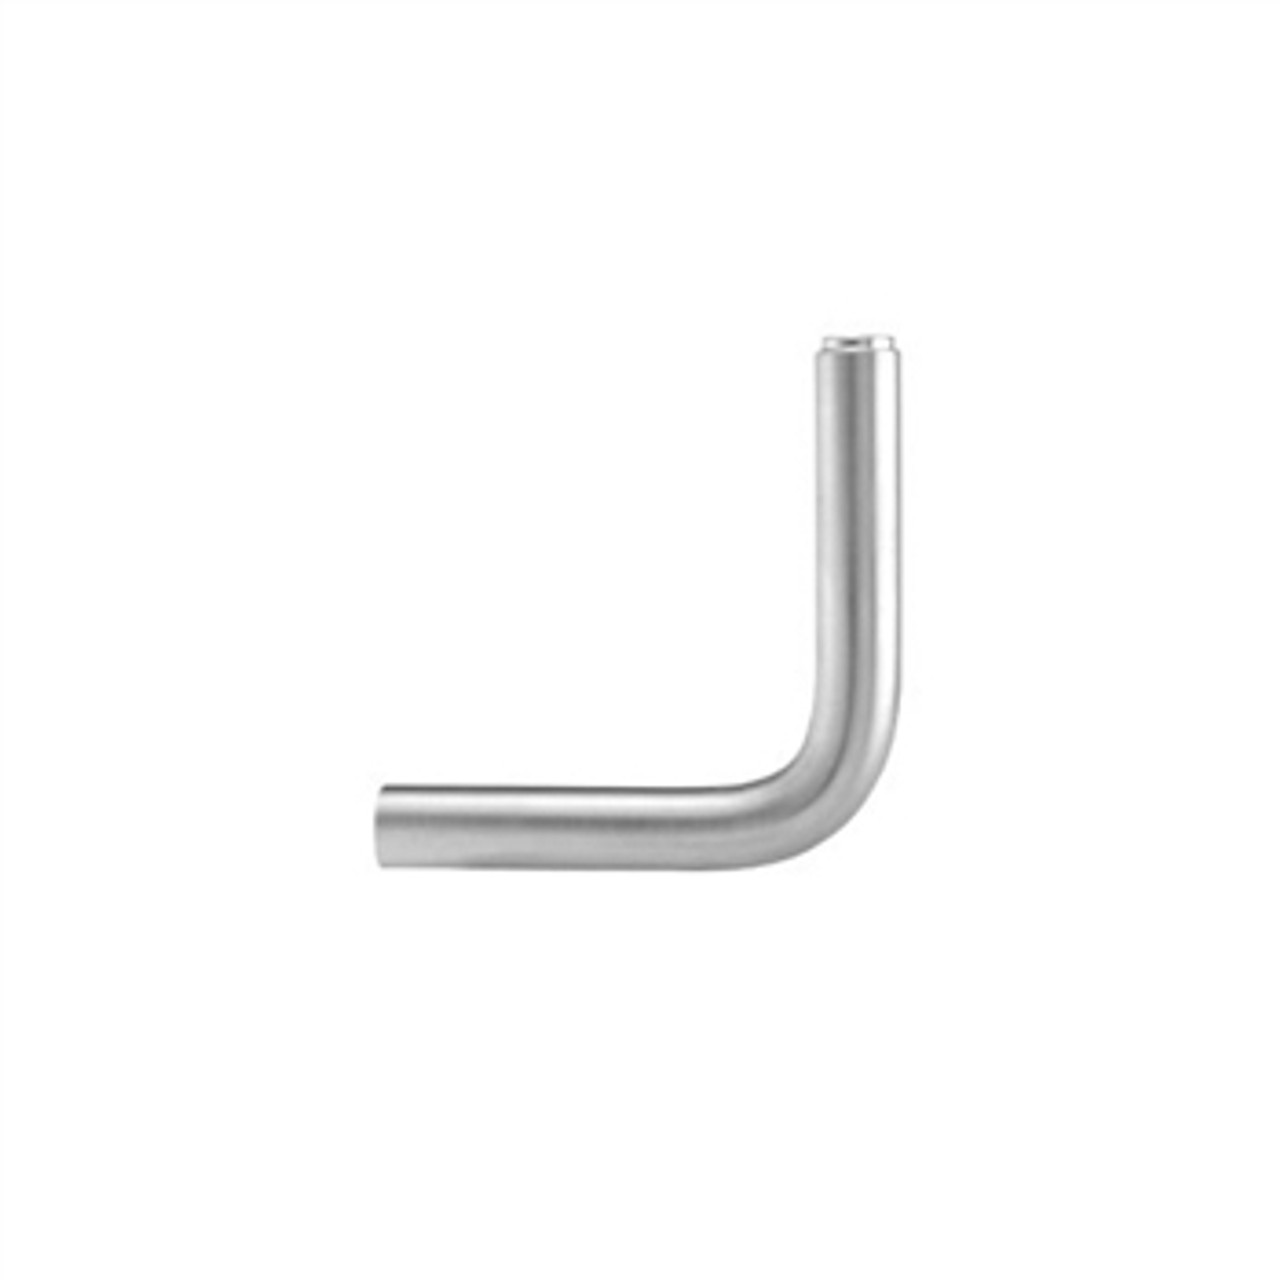 E011948 Stainless Steel Handrail Support, Elbow